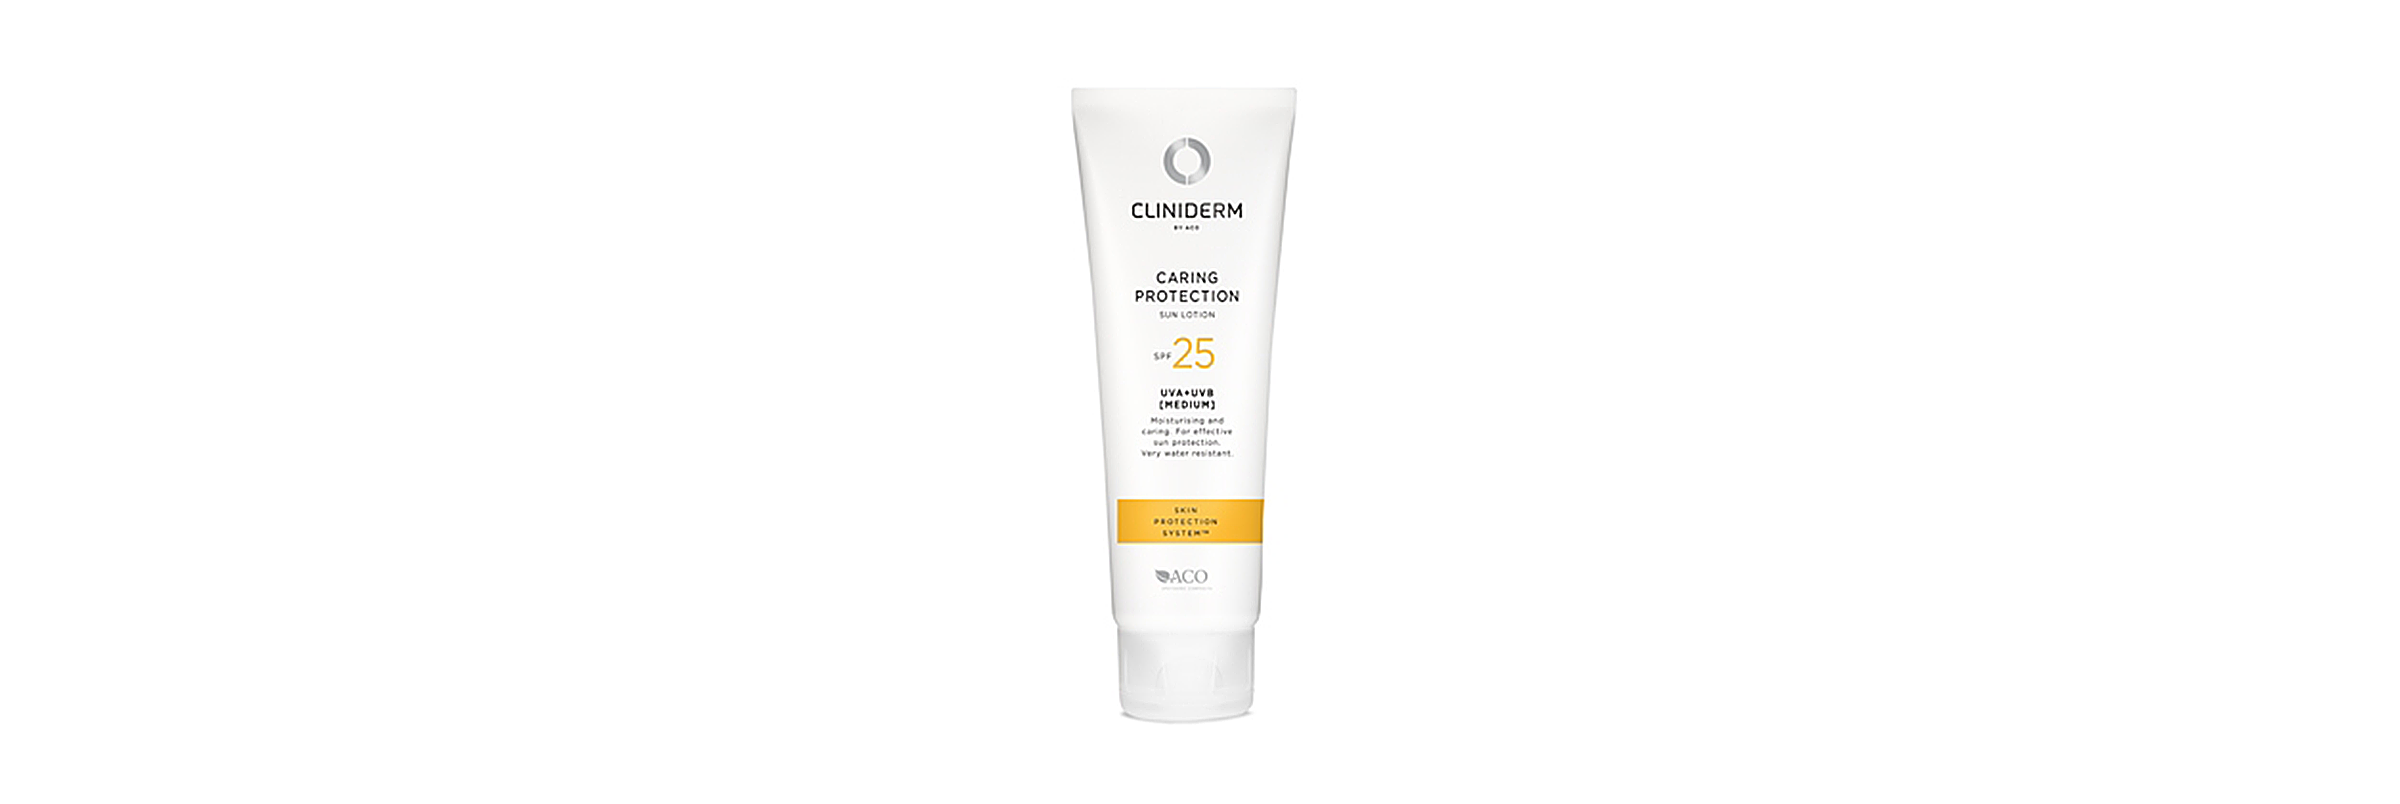 Cliniderm Caring Protection Sun Lotion